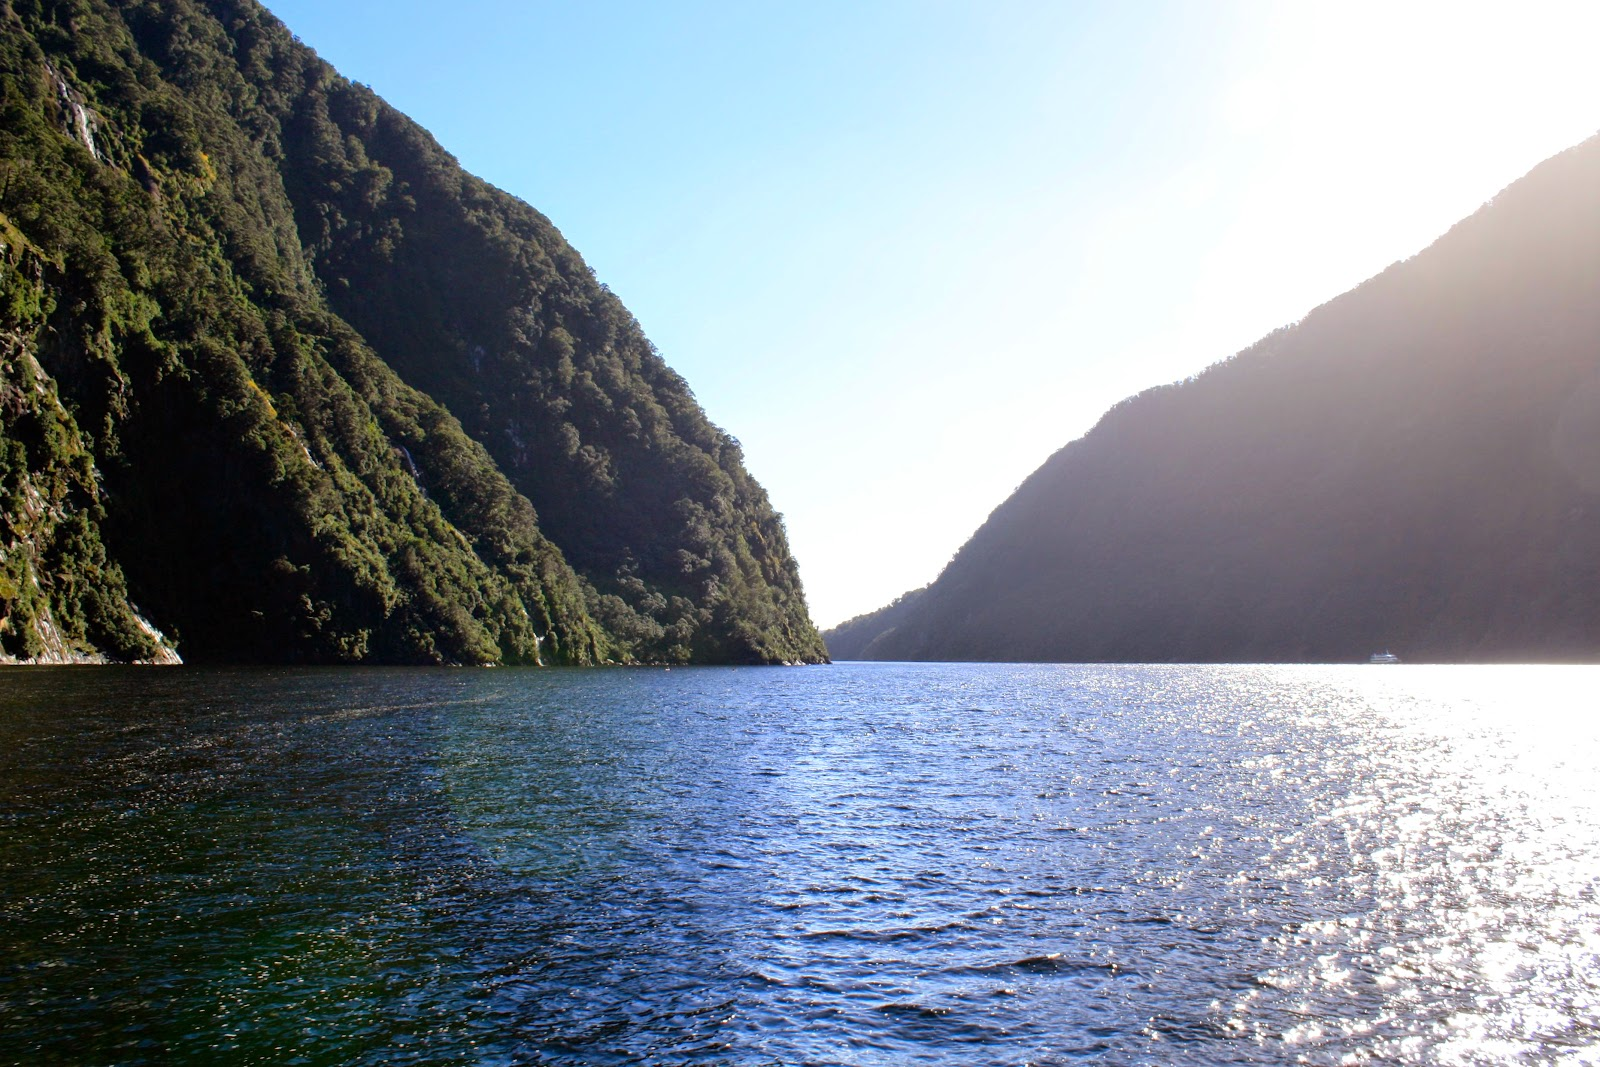 Sunlight on the water in Milford Sound.